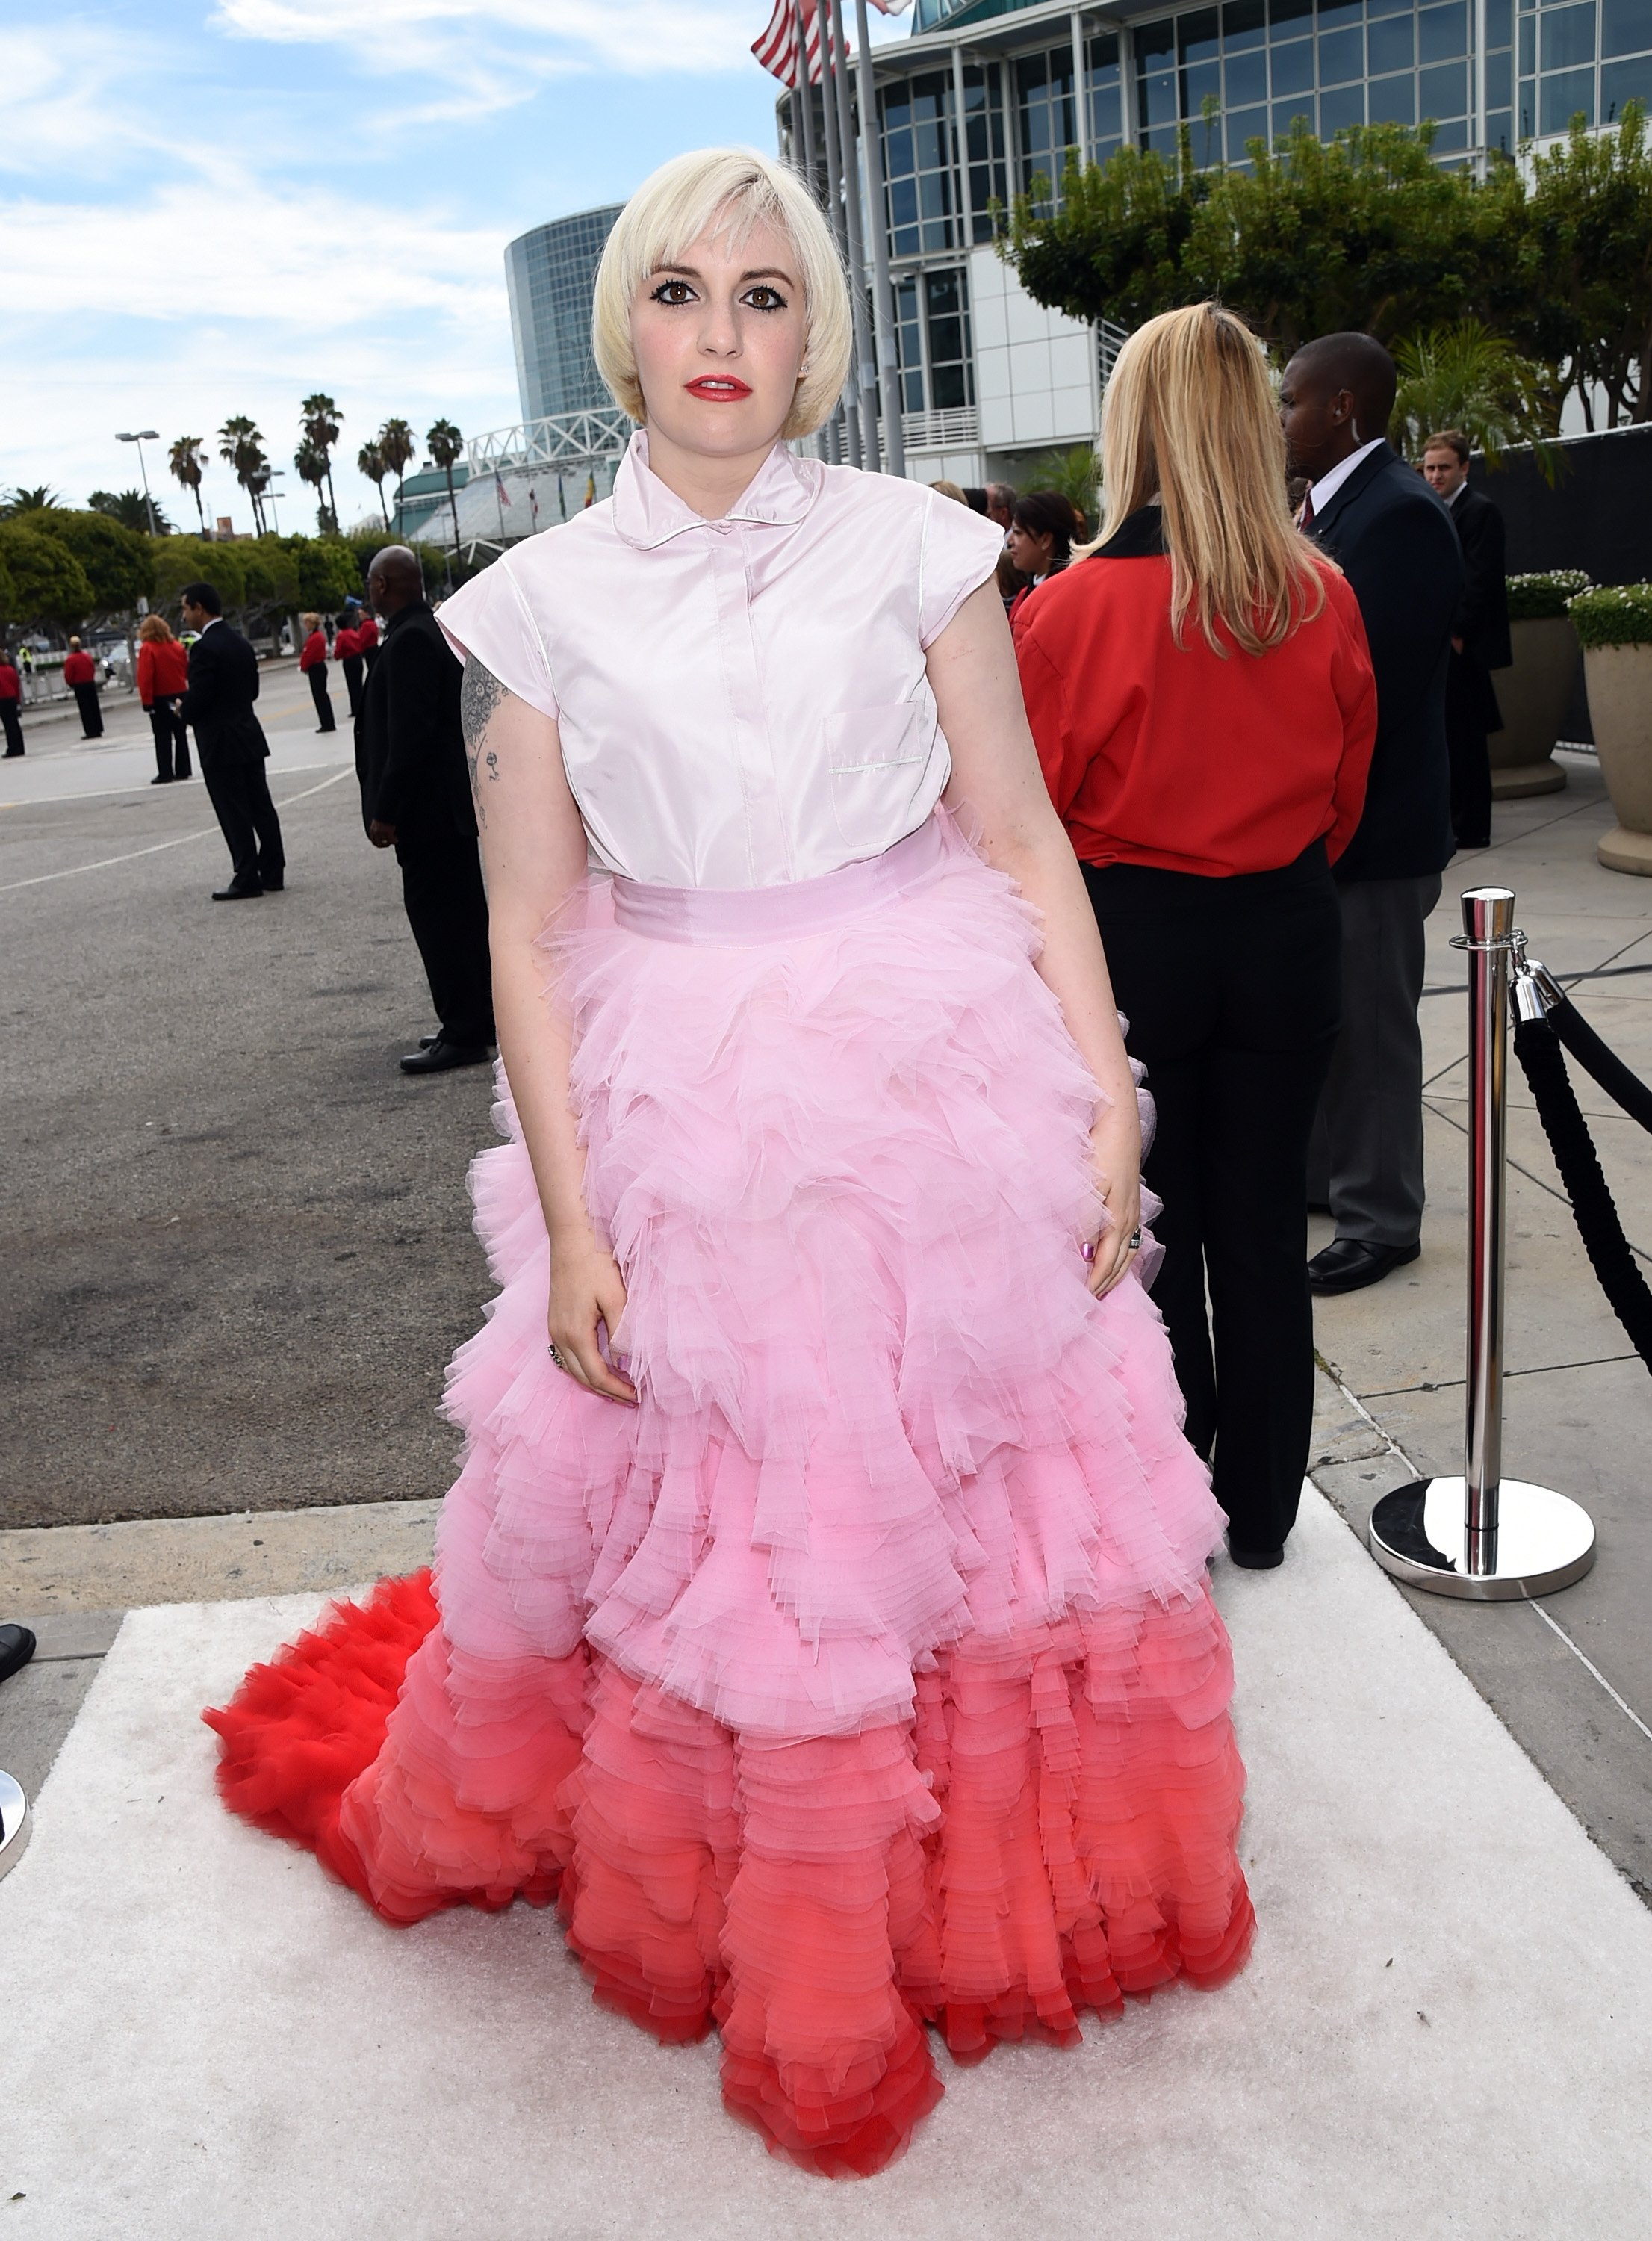 Lena Dunham attends the 66th Annual Primetime Emmy Awards held at Nokia Theatre L.A. Live on August 25, 2014 in Los Angeles, California.